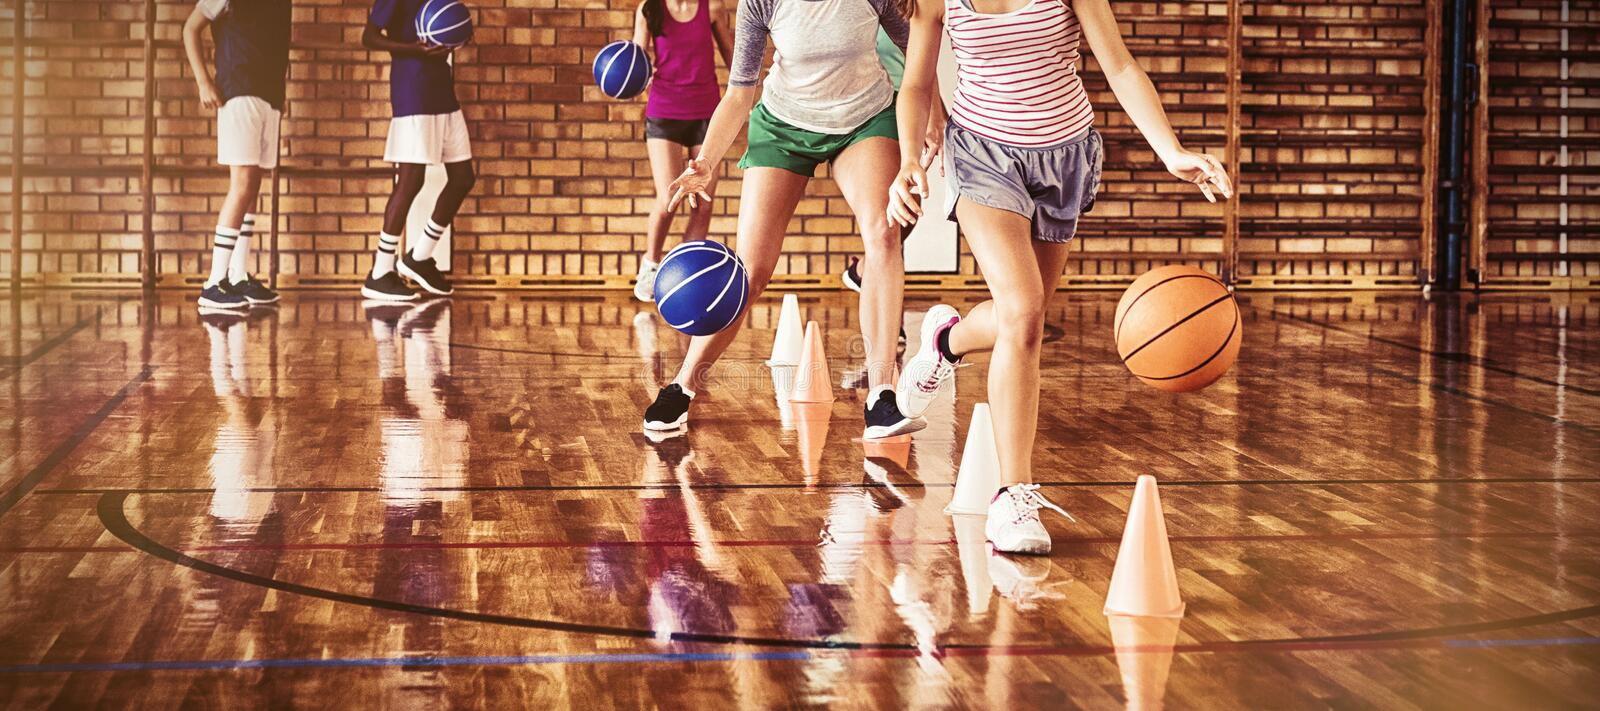 High school kids practicing football using cones for dribbling drill. In the court royalty free stock image